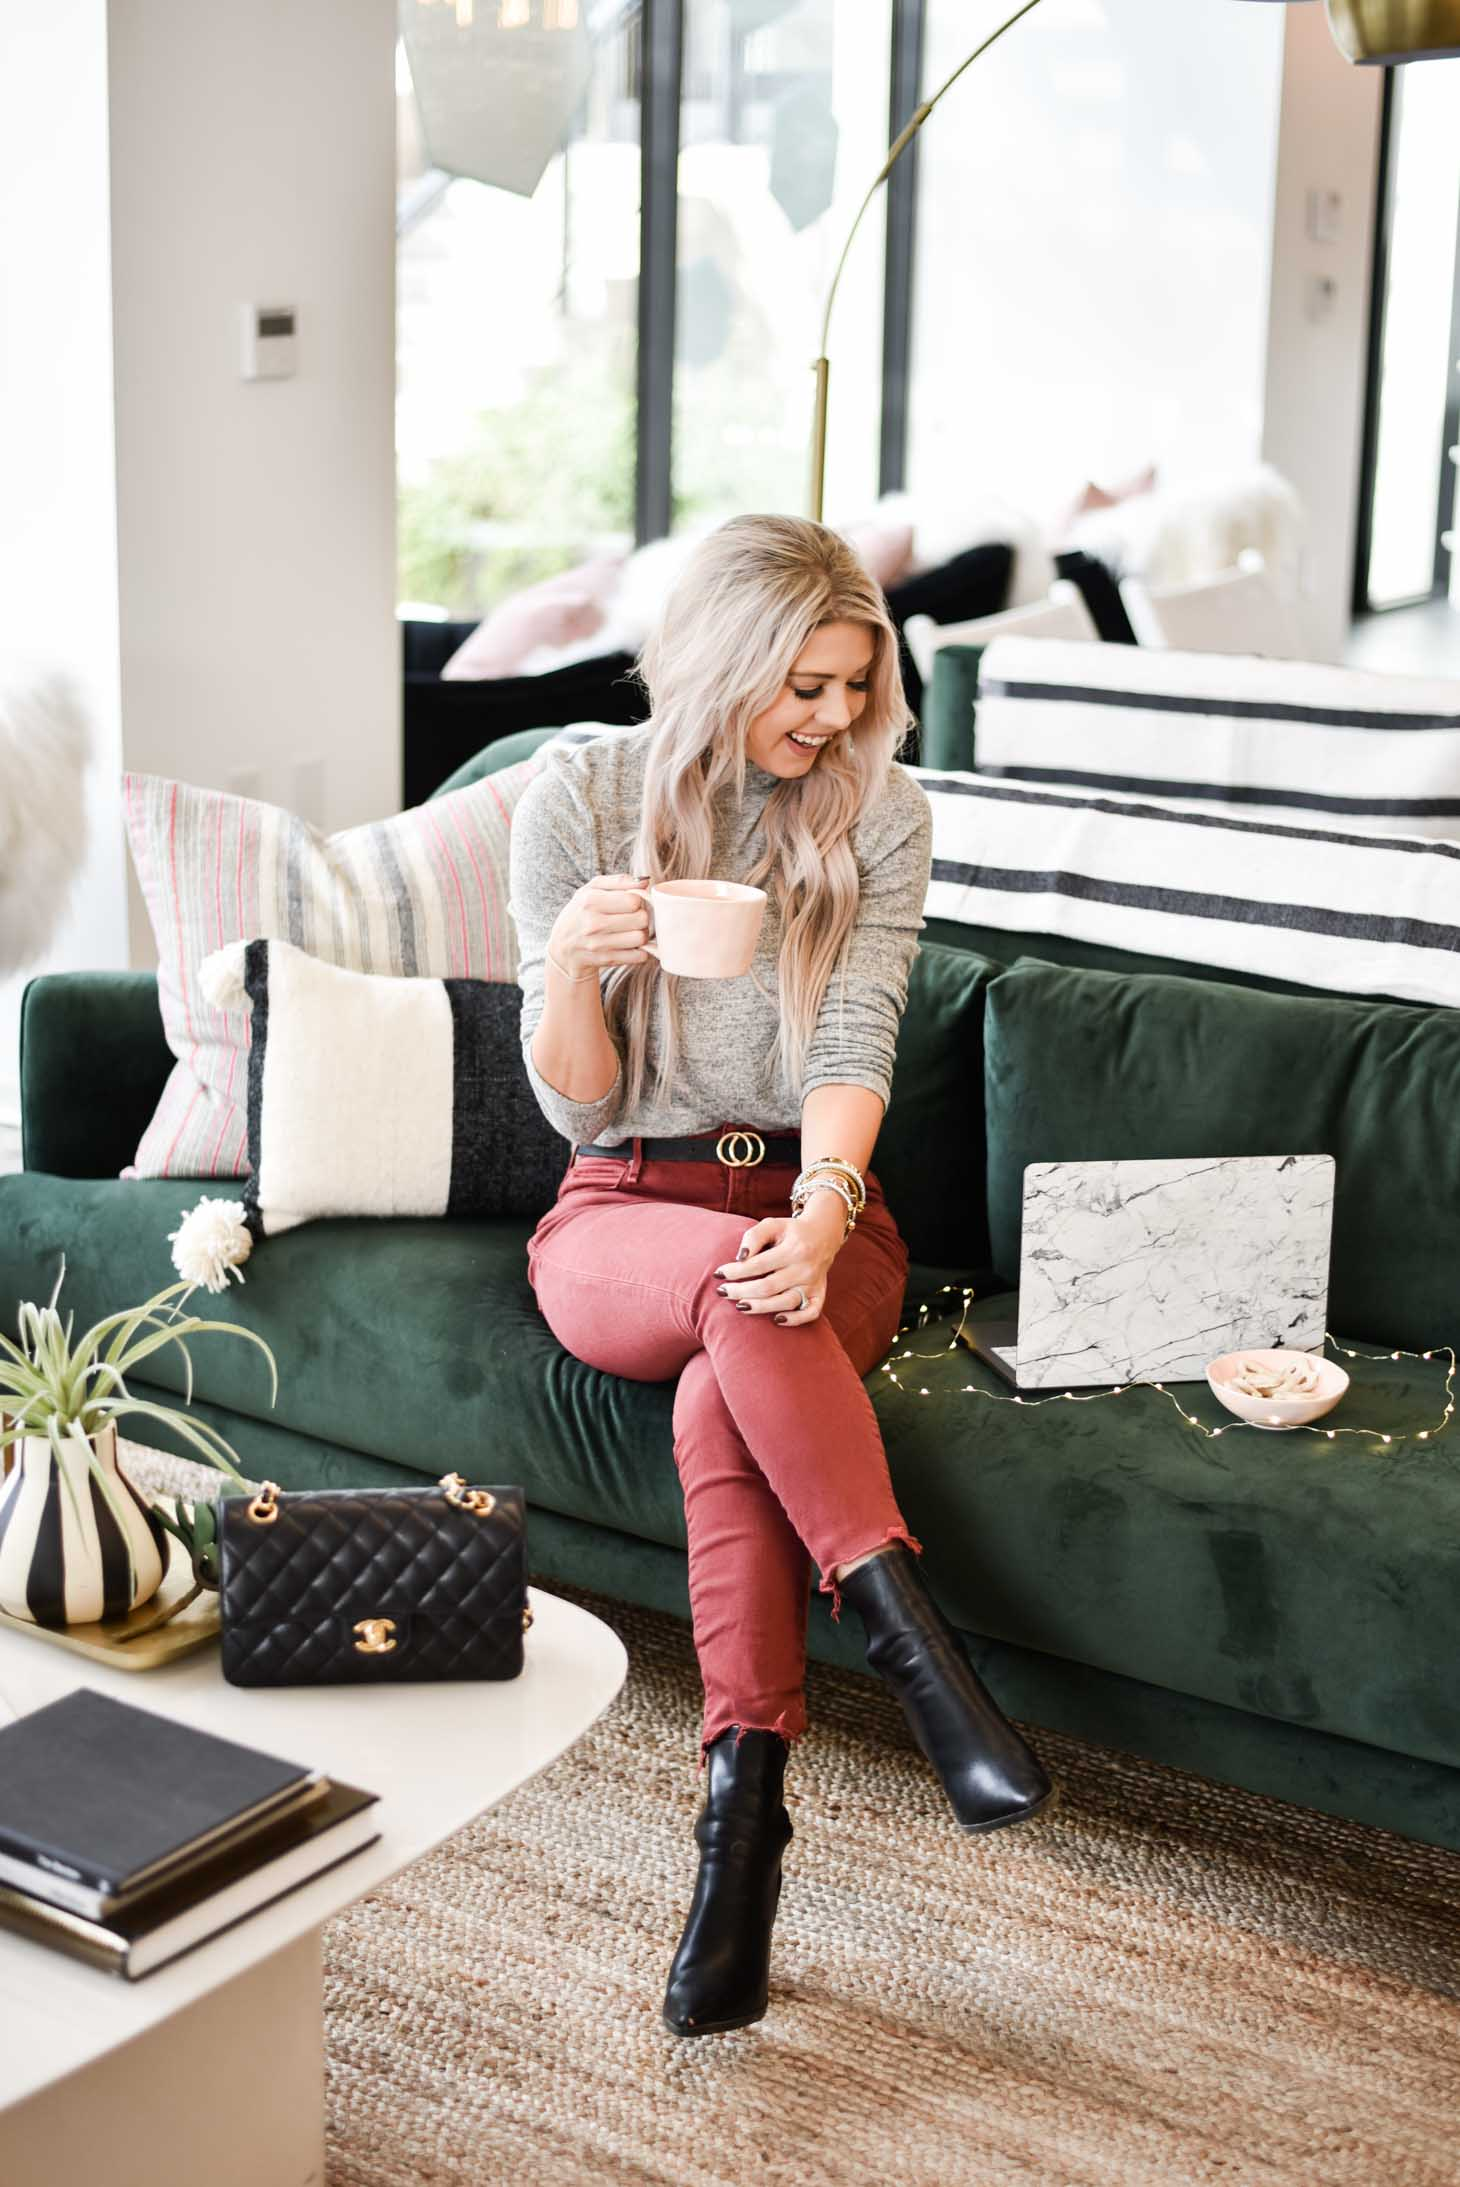 Erin Elizabeth of Wink and a Twirl shares Cyber Week Sales from her local women's workspace The Emerald in Scottsdale, Arizona